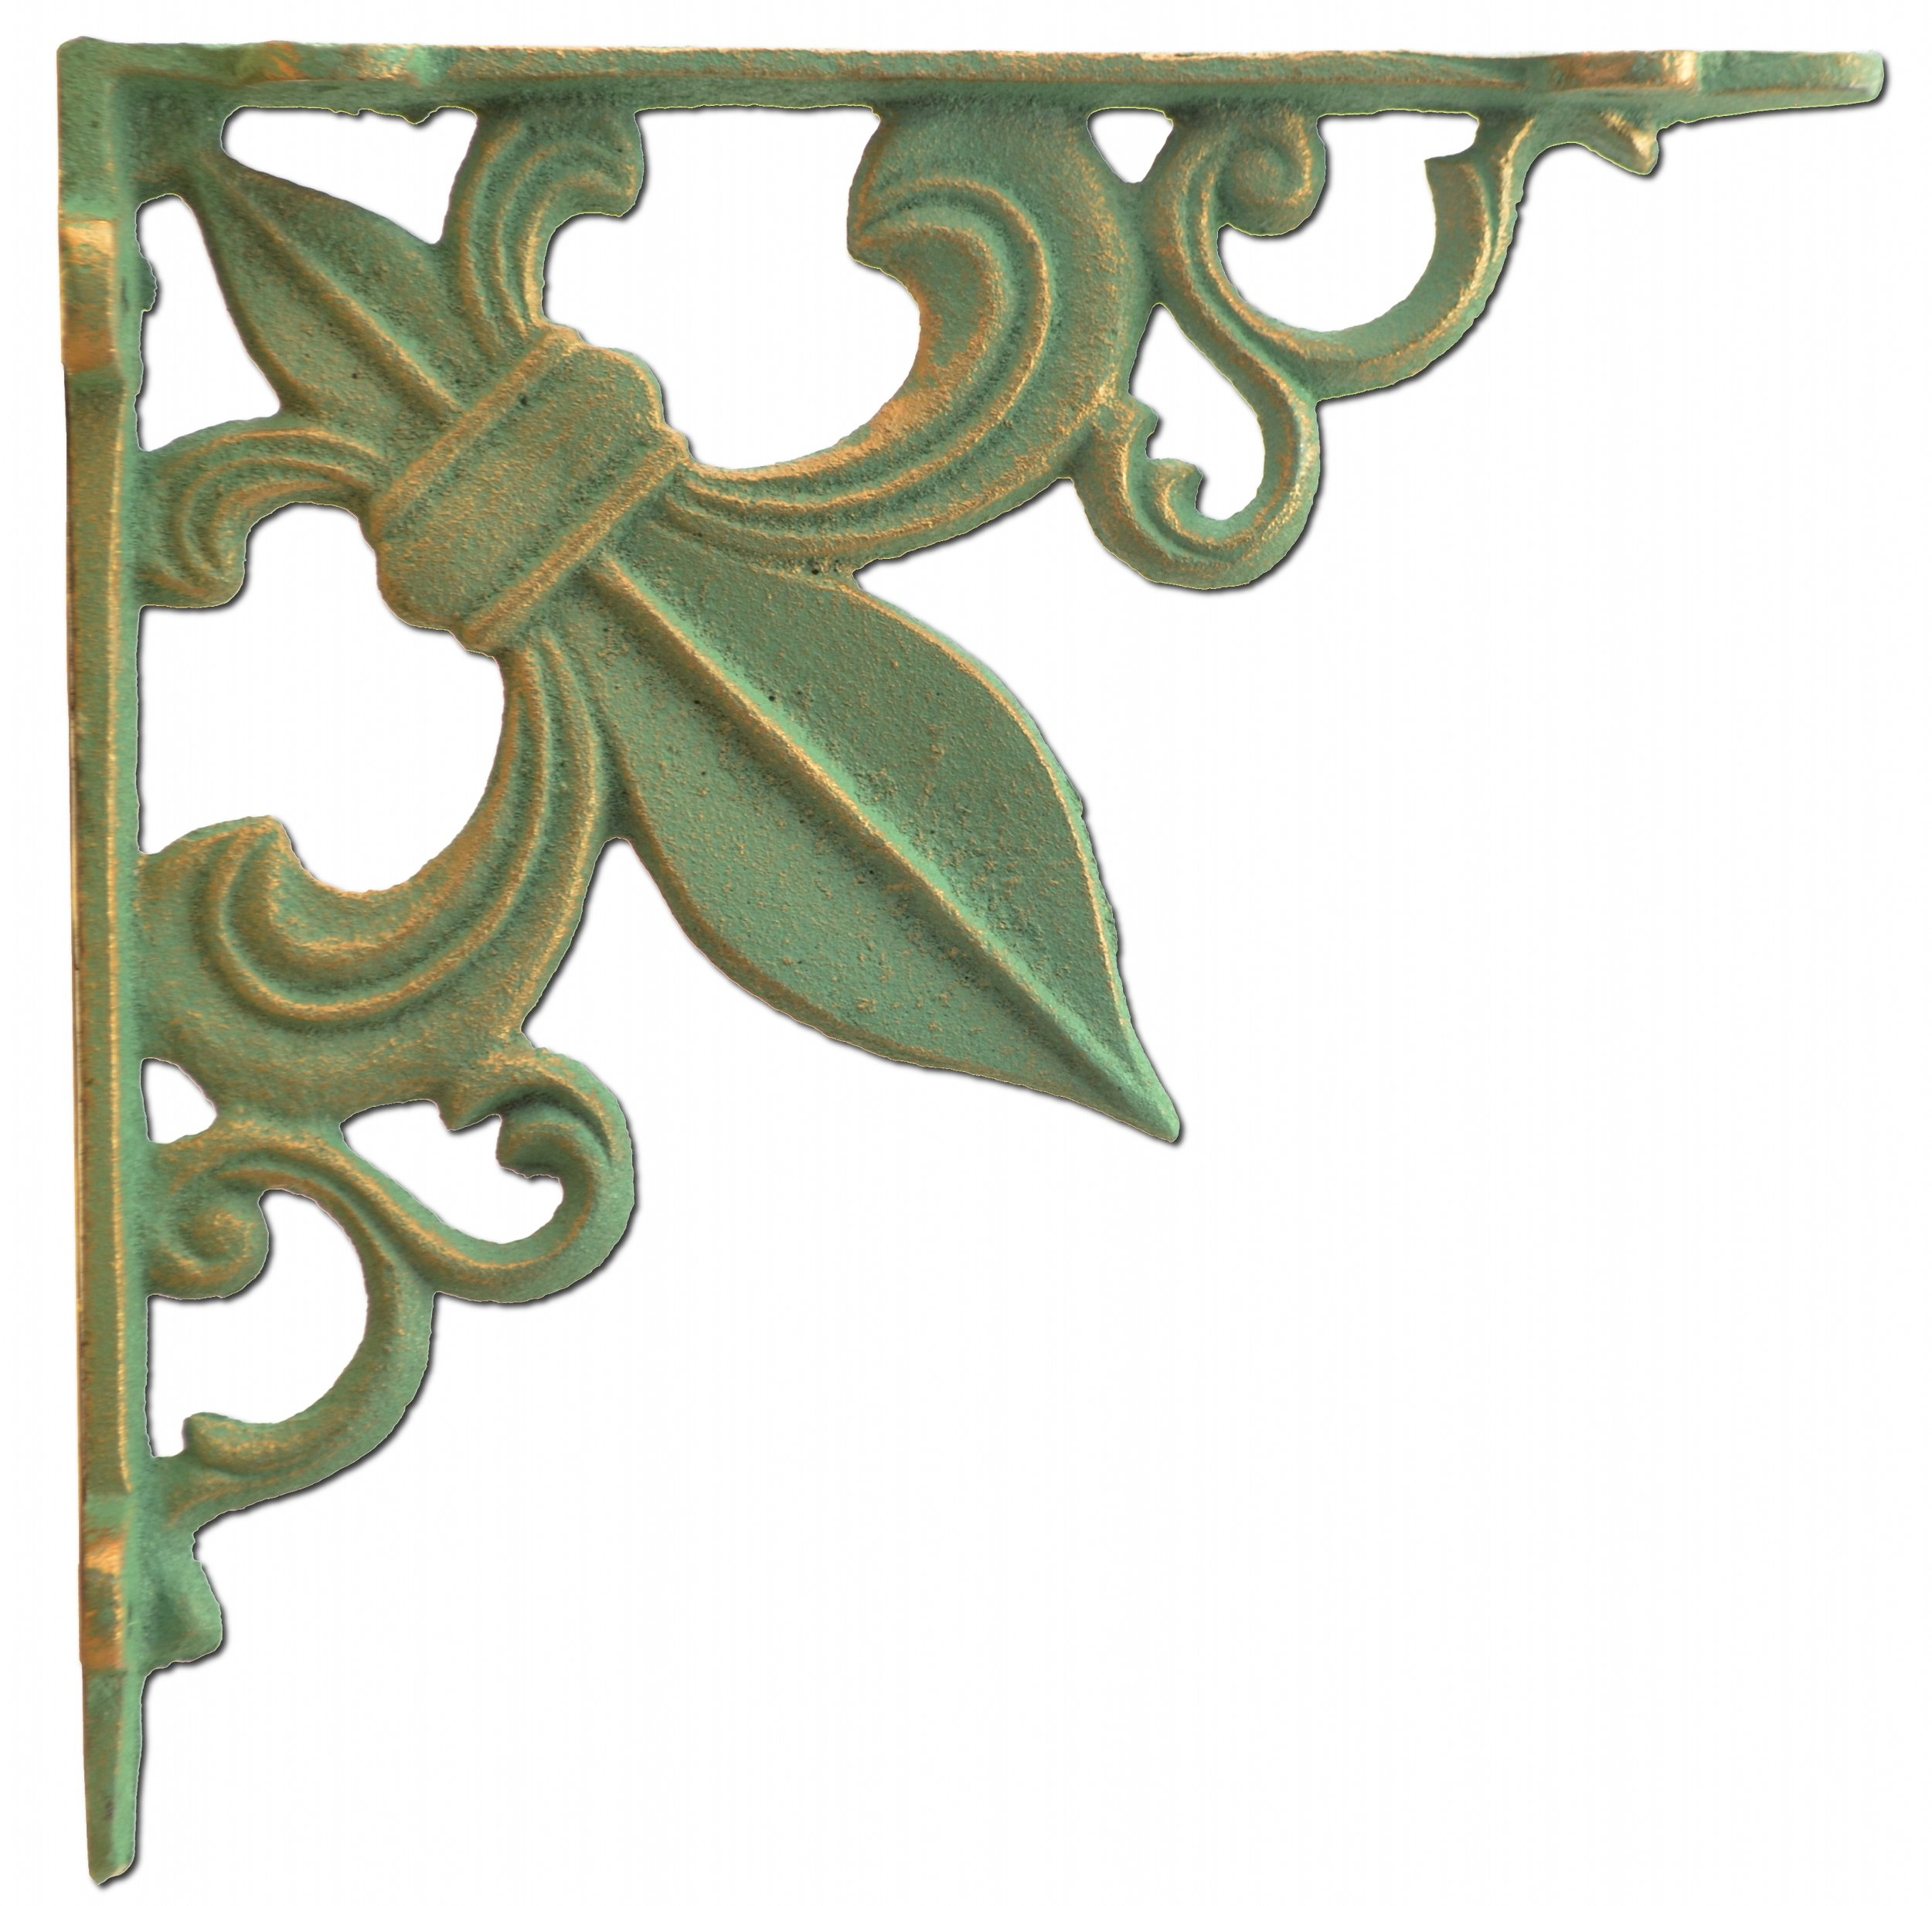 Wall Shelf Bracket Fleur De Lis Cast Iron Custom Shelves Brace Bronze Patina Green 7.375'' by Import Wholesales